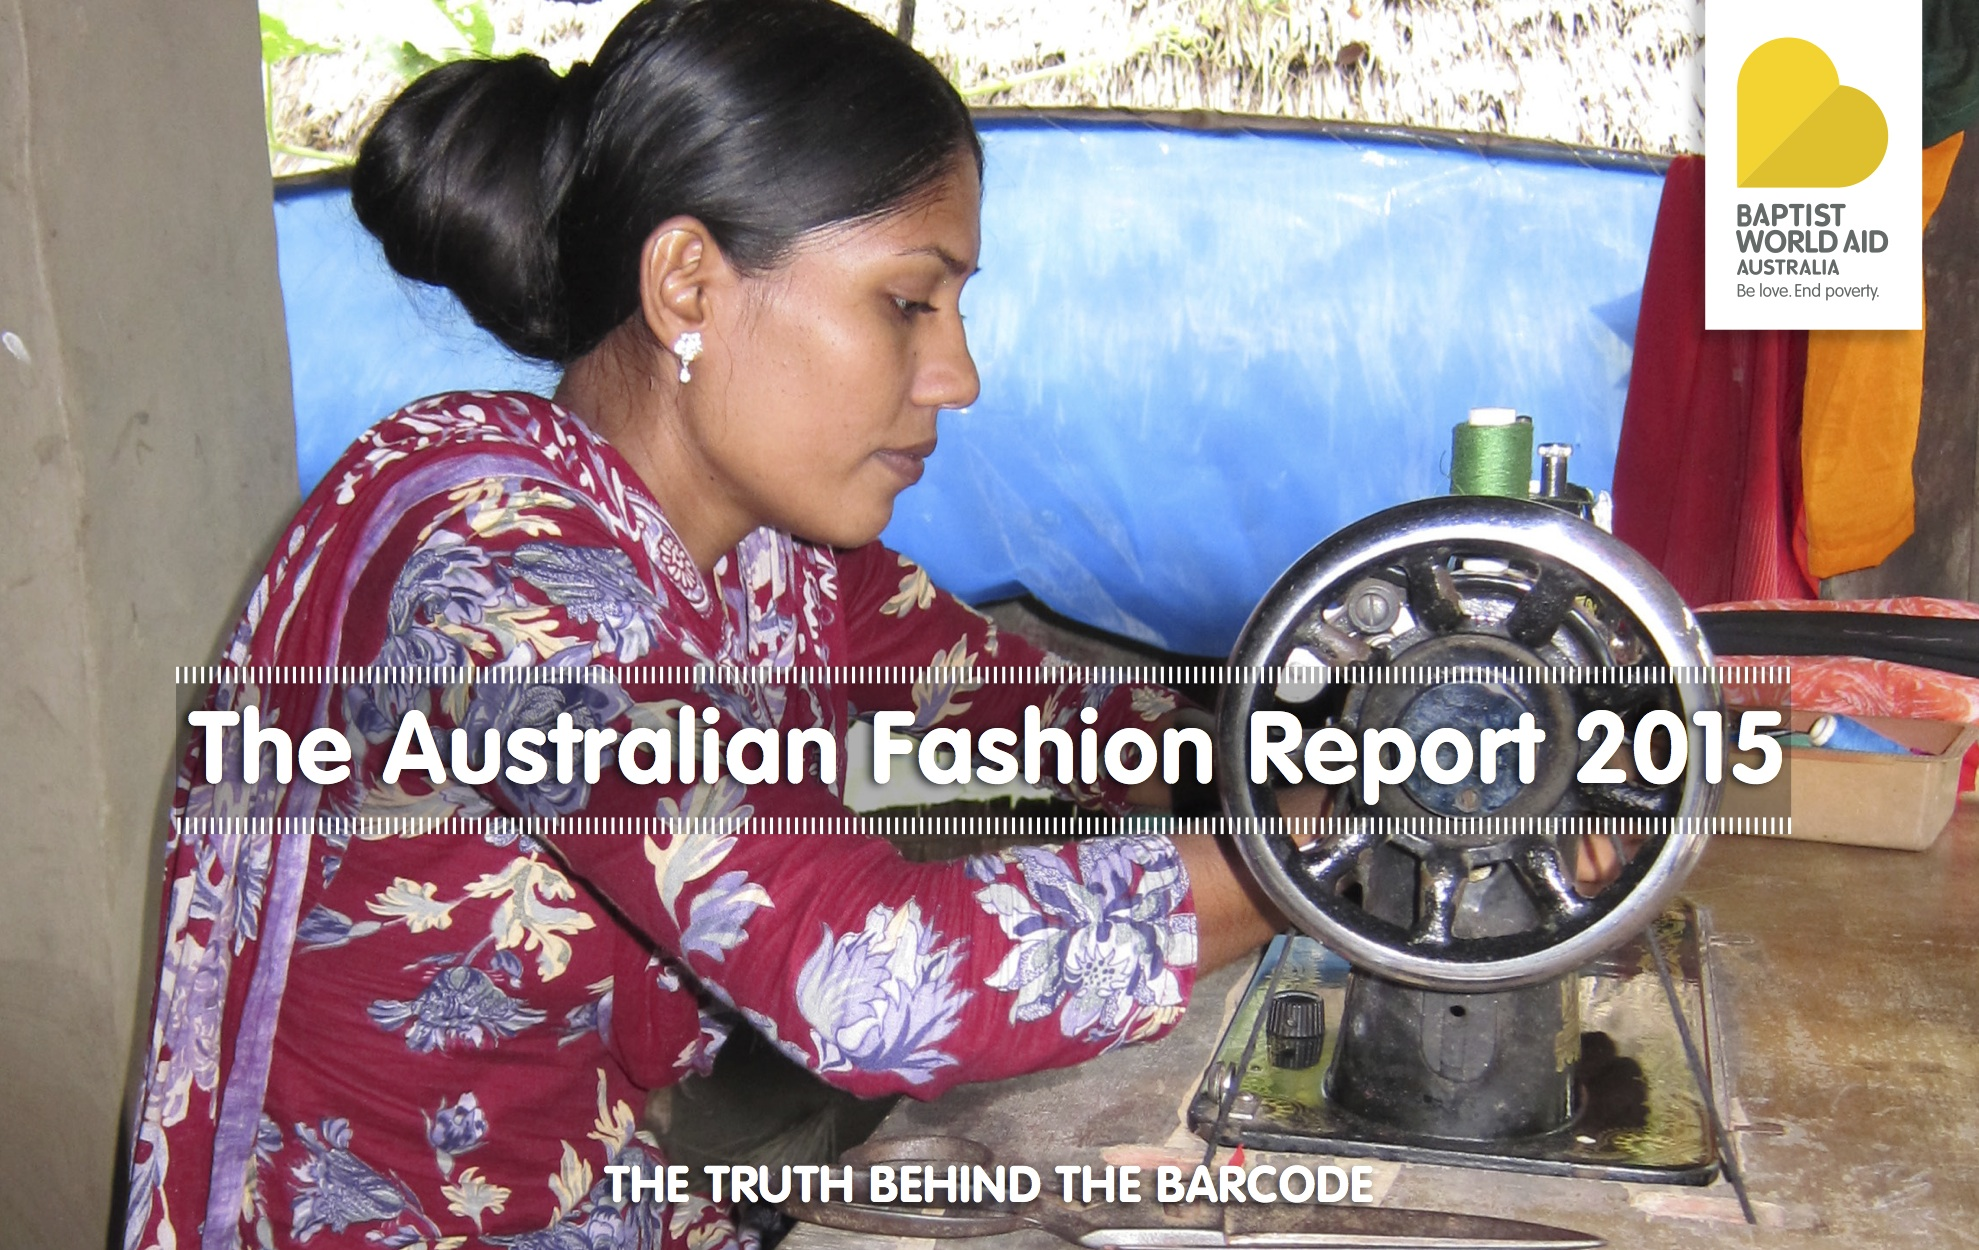 Australian Fashion Report 2015 cover